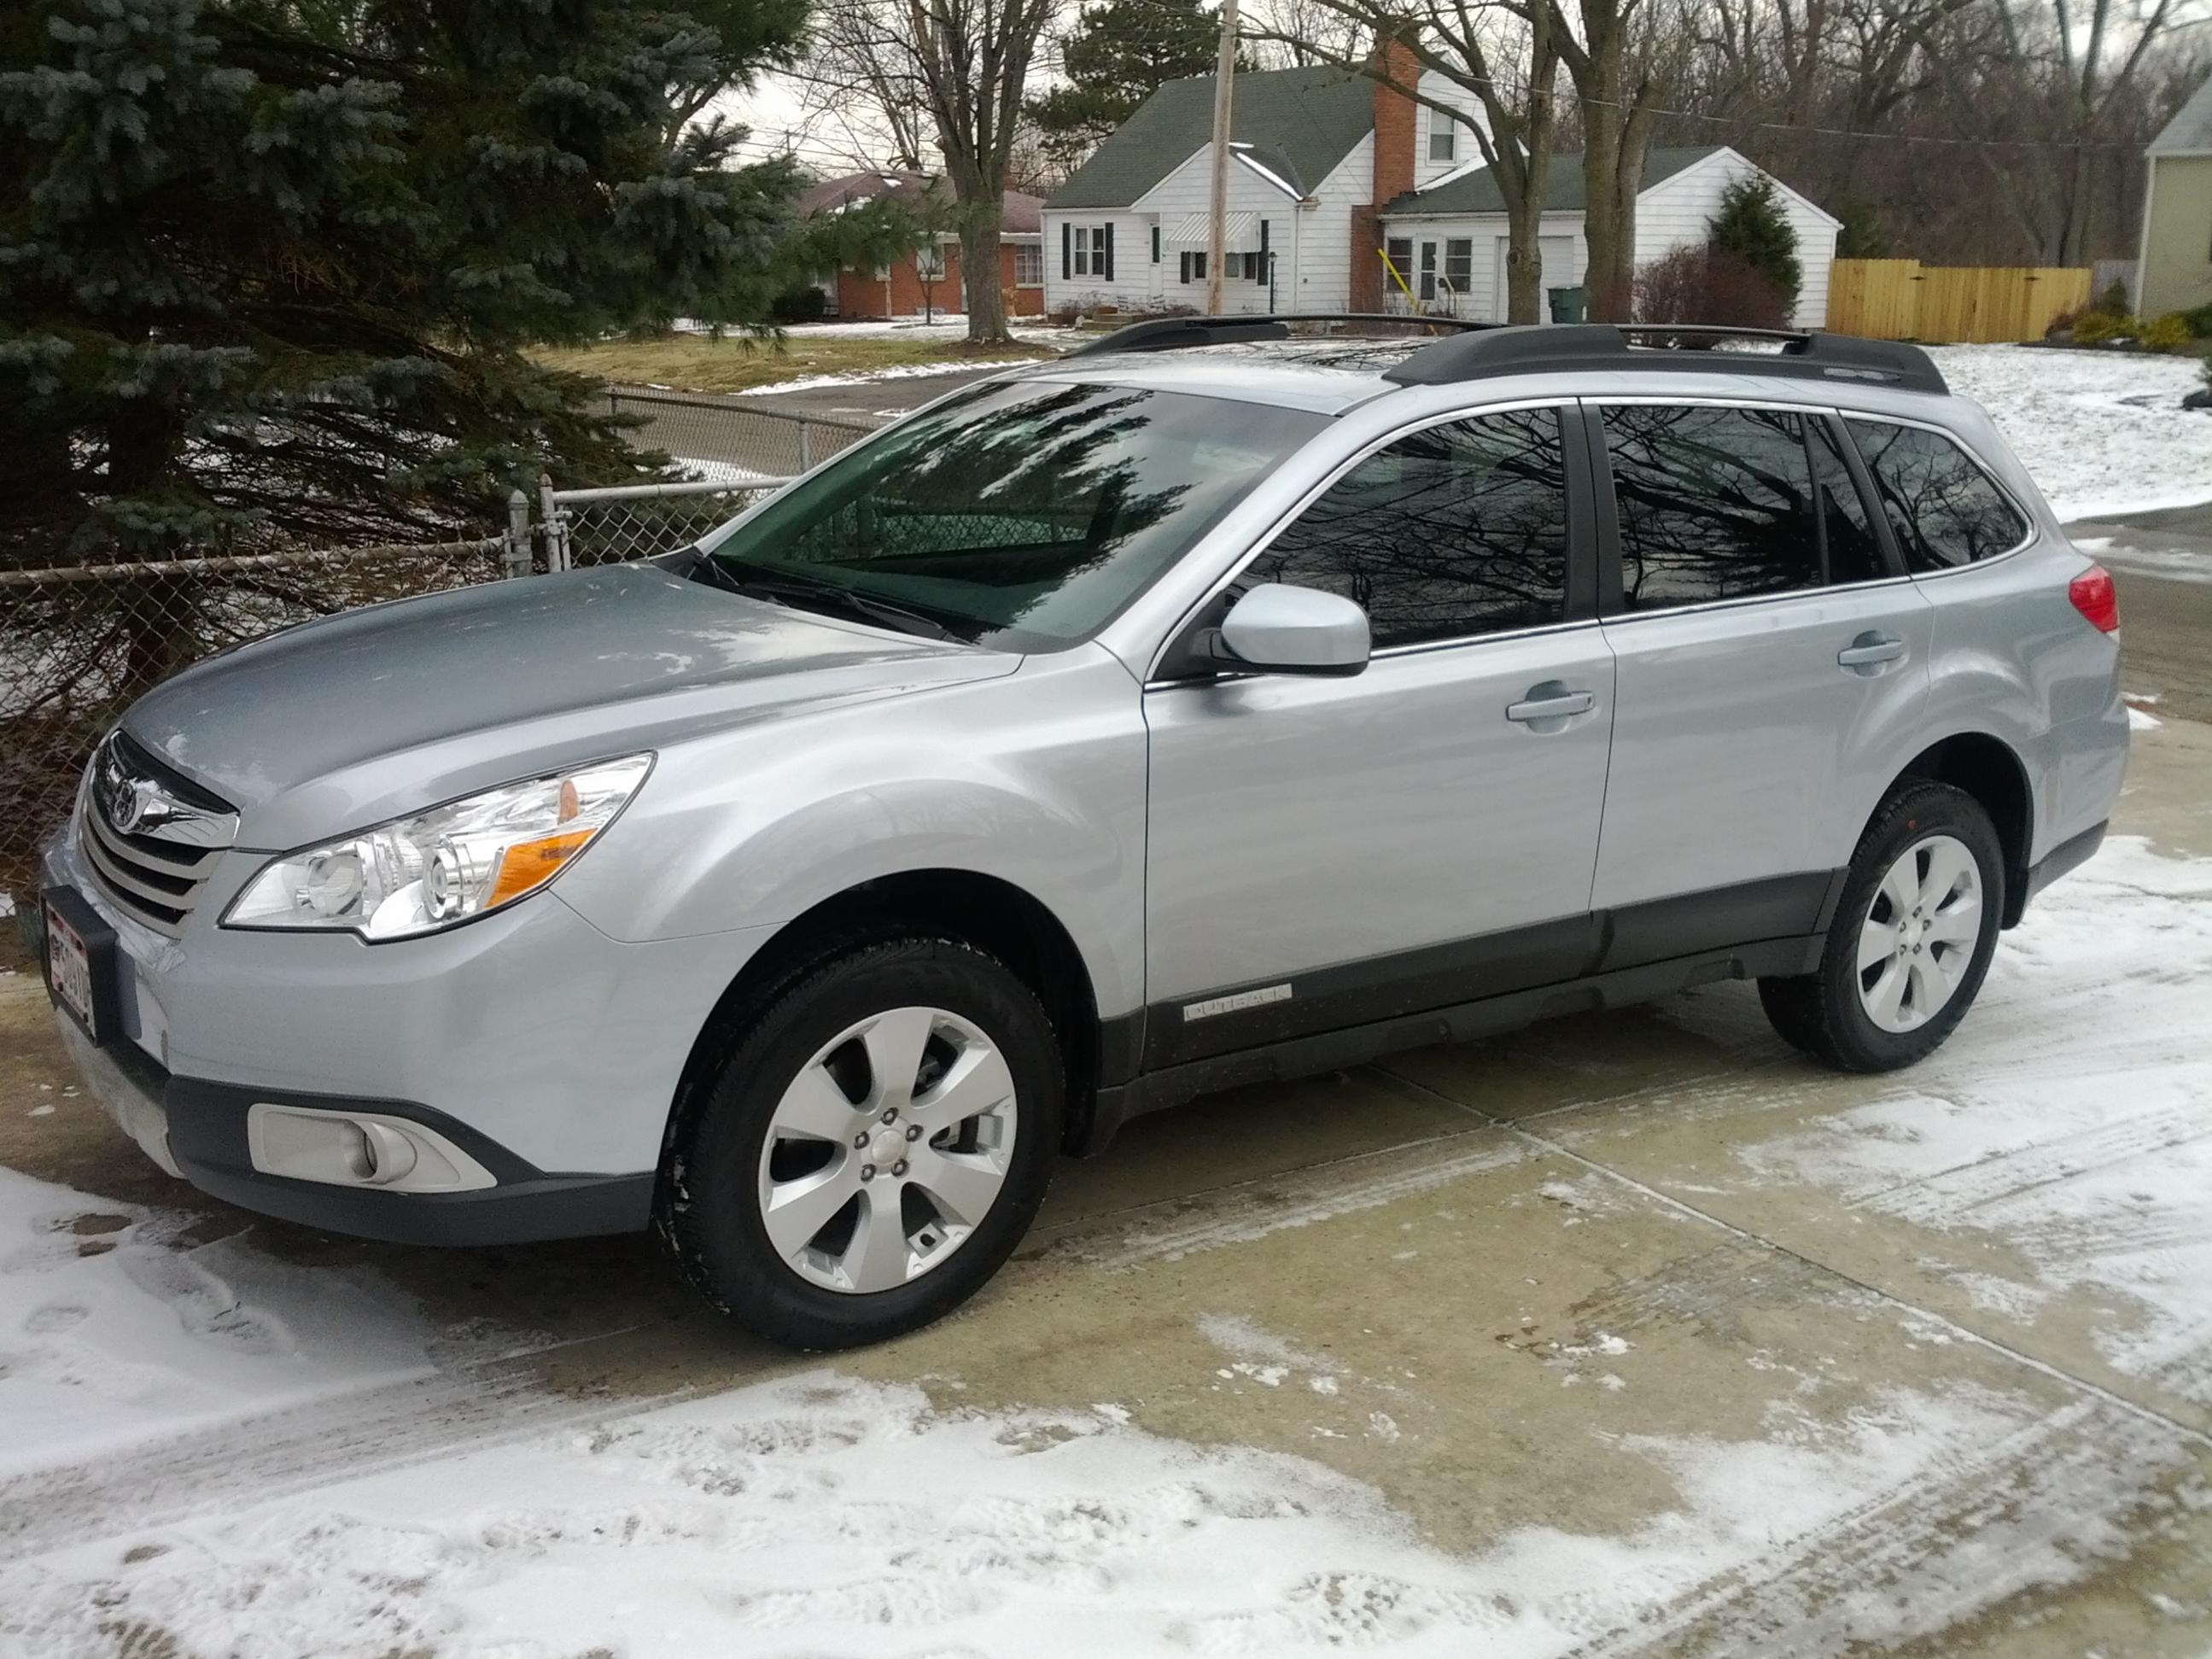 Ice Silver - Page 4 - Subaru Outback - Subaru Outback Forums